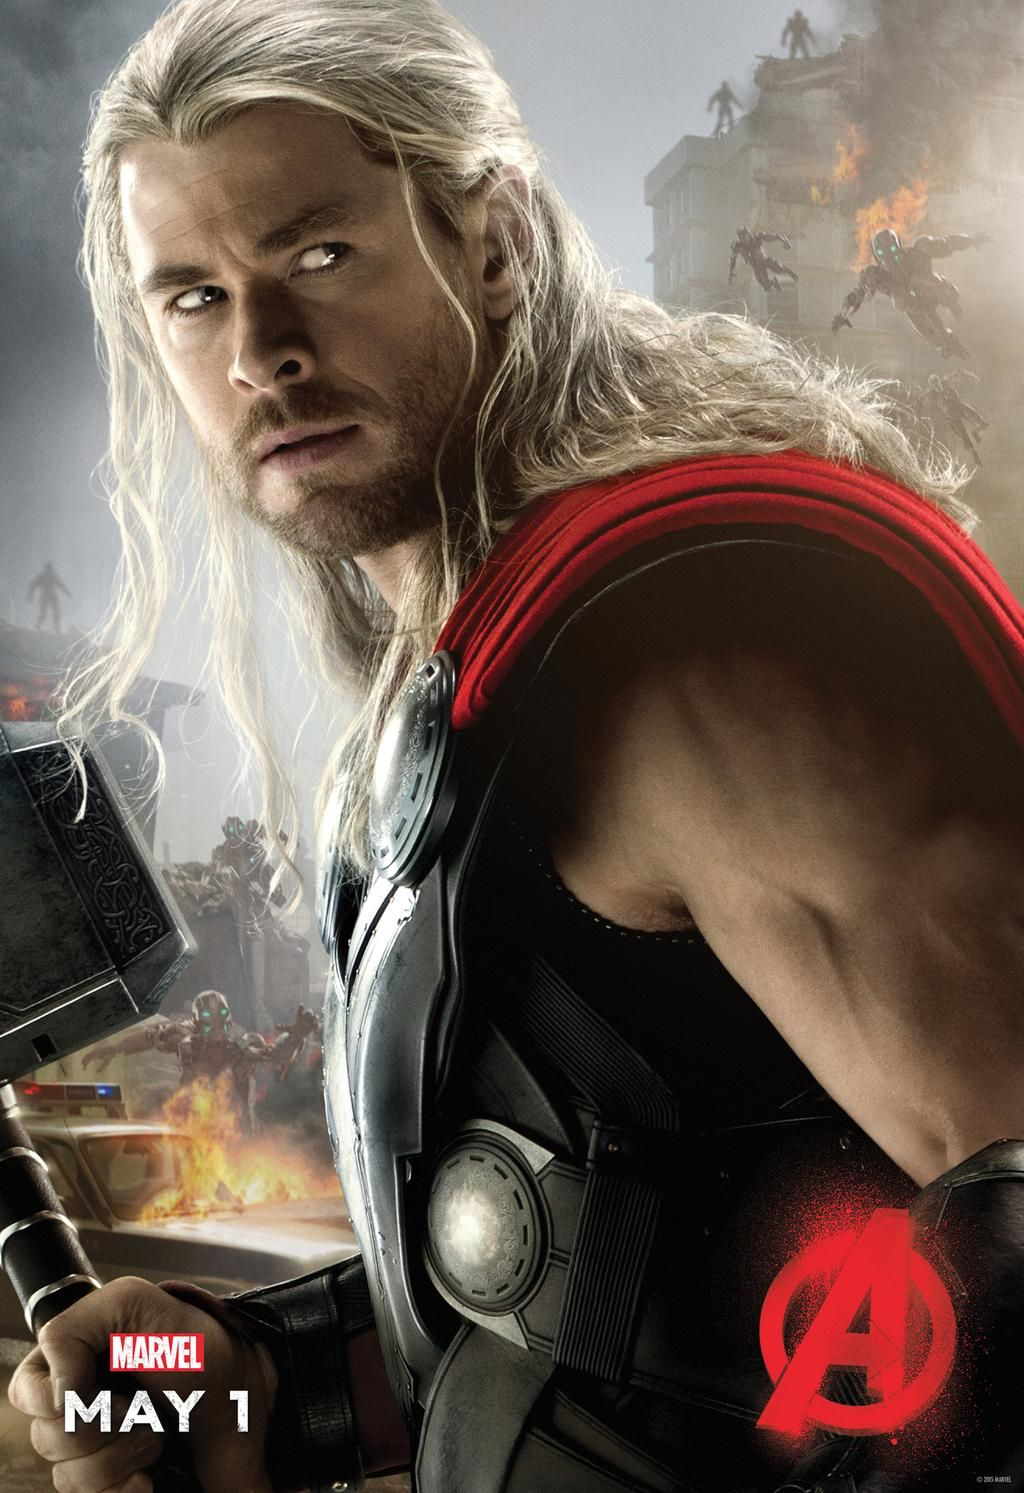 Chris Hemsworth, Tom Hiddleston on Civil War as Thor, Loki | Collider